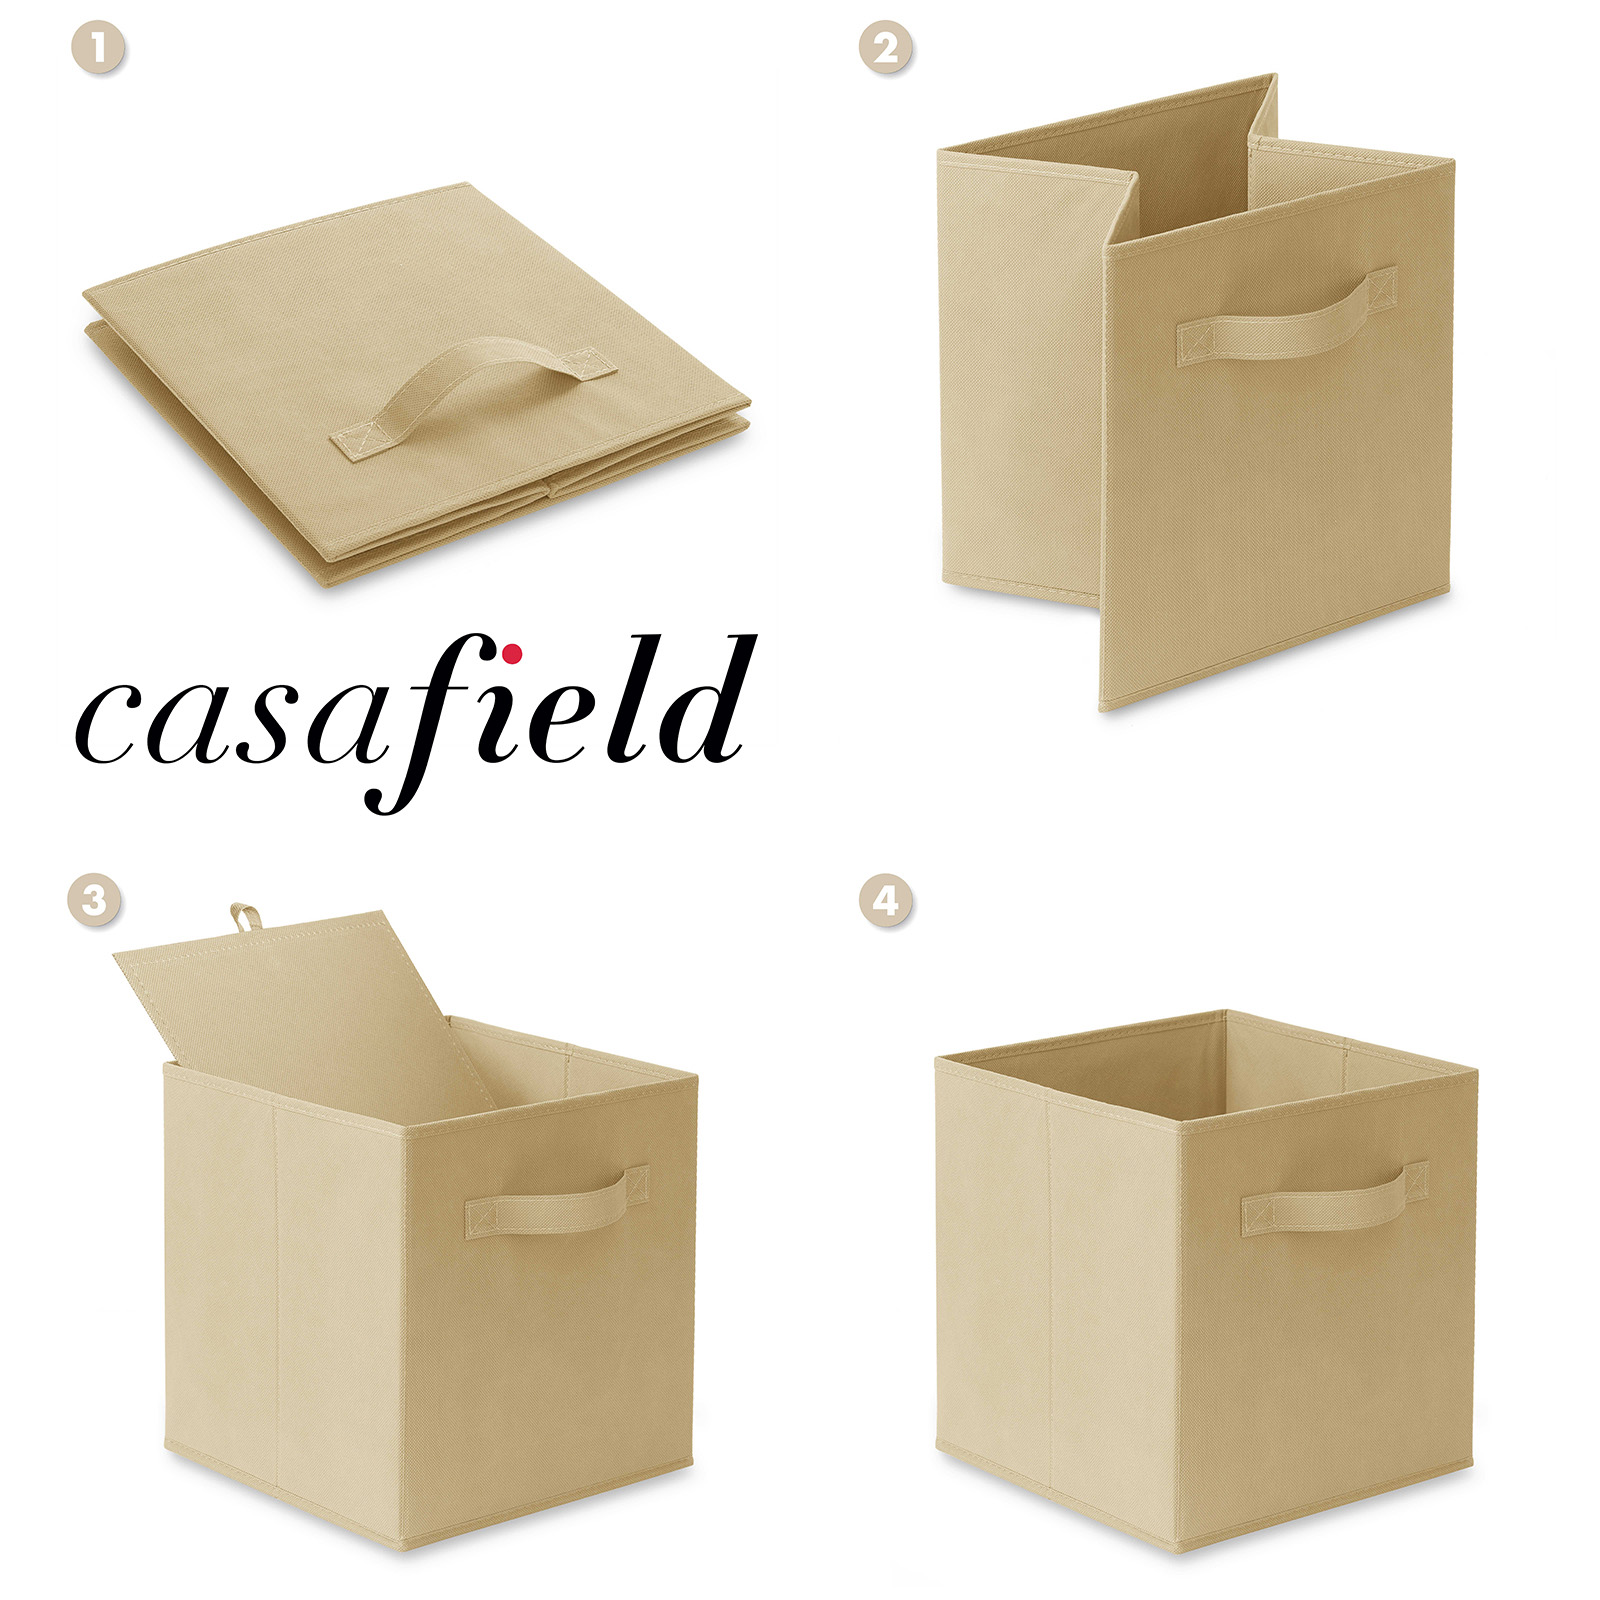 6-Collapsible-Foldable-Cloth-Fabric-Cubby-Cube-Storage-Bins-Baskets-for-Shelves thumbnail 76